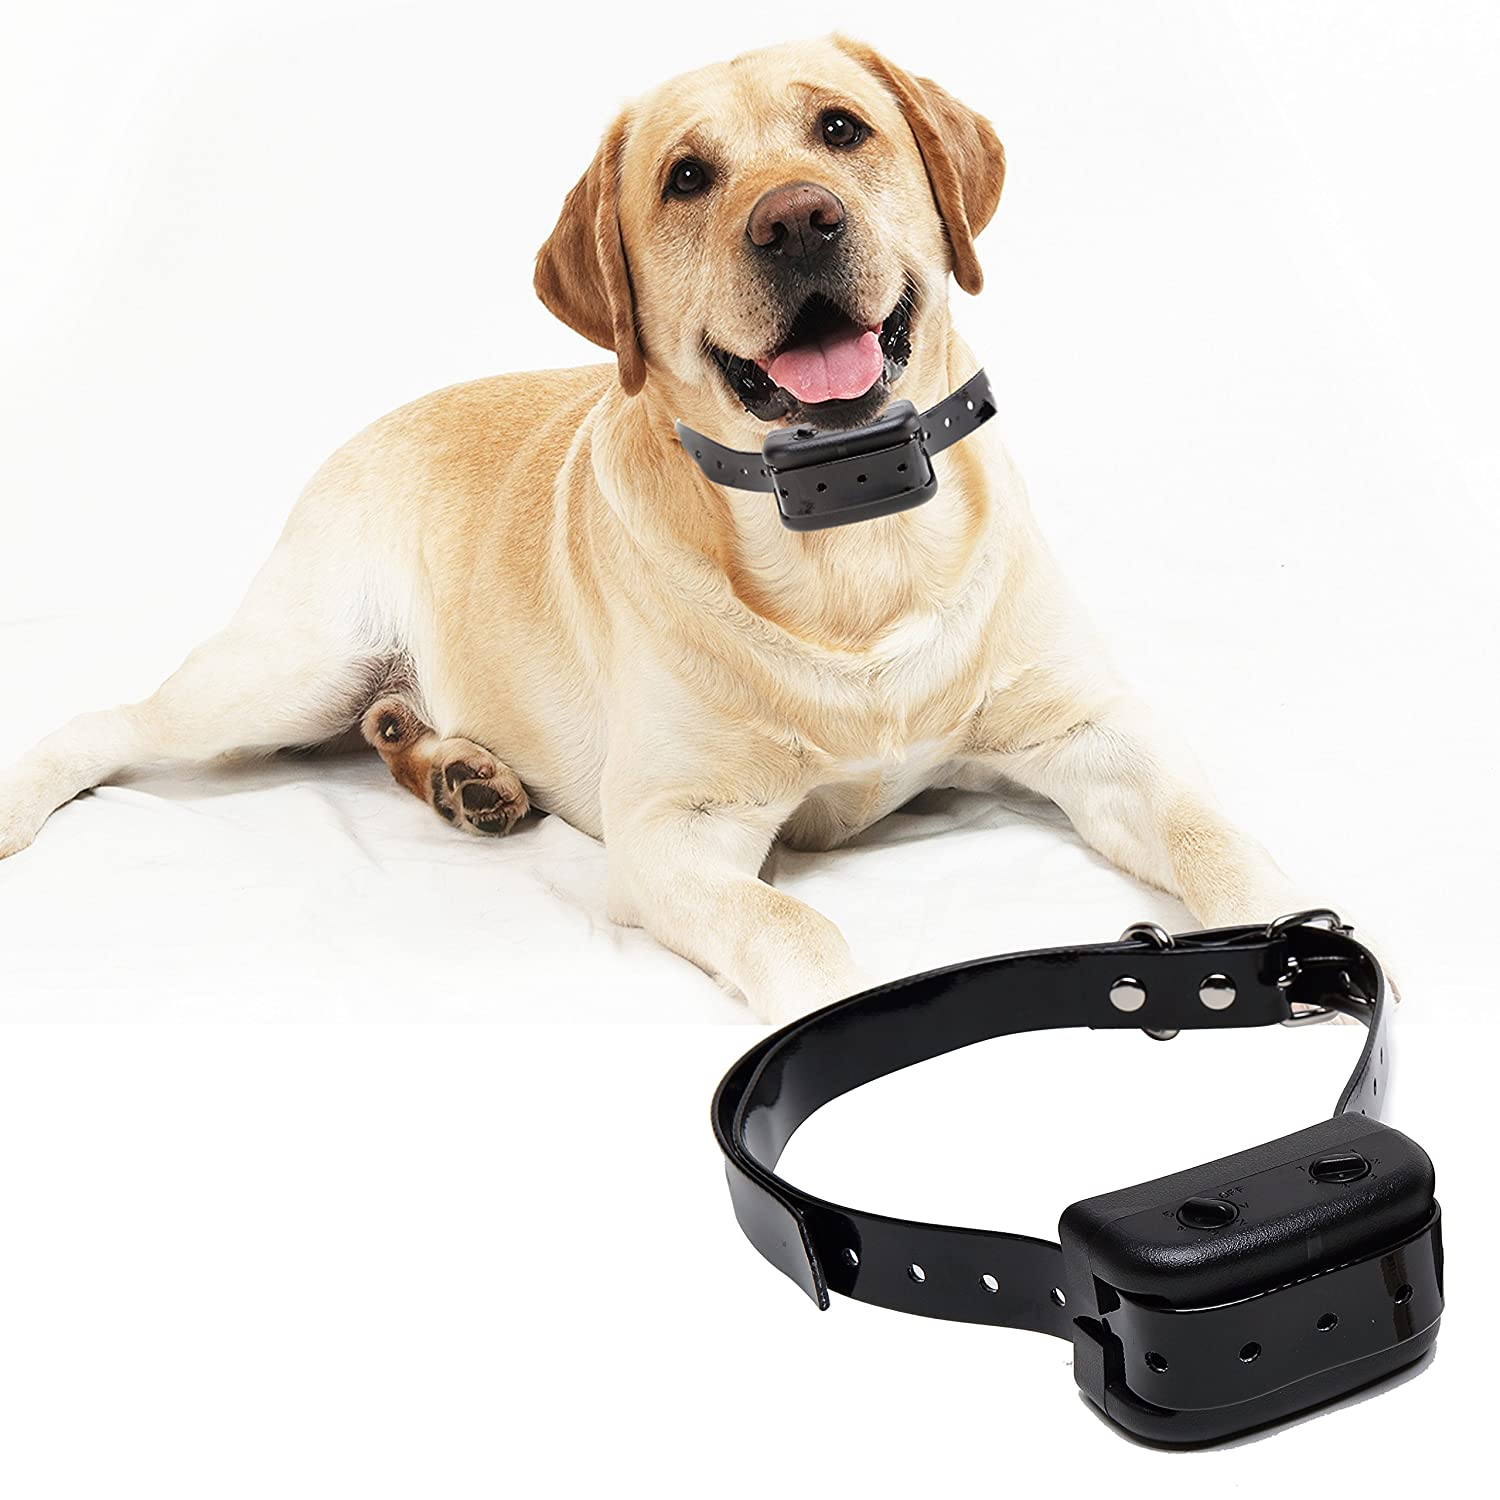 SySrion® No Bark Collar for Bark Control w/ 6 Levels Adjustable Sensitivity Control with Manual - Waterproof & Rechargeable for Small, Medium & Large Dogs - Black